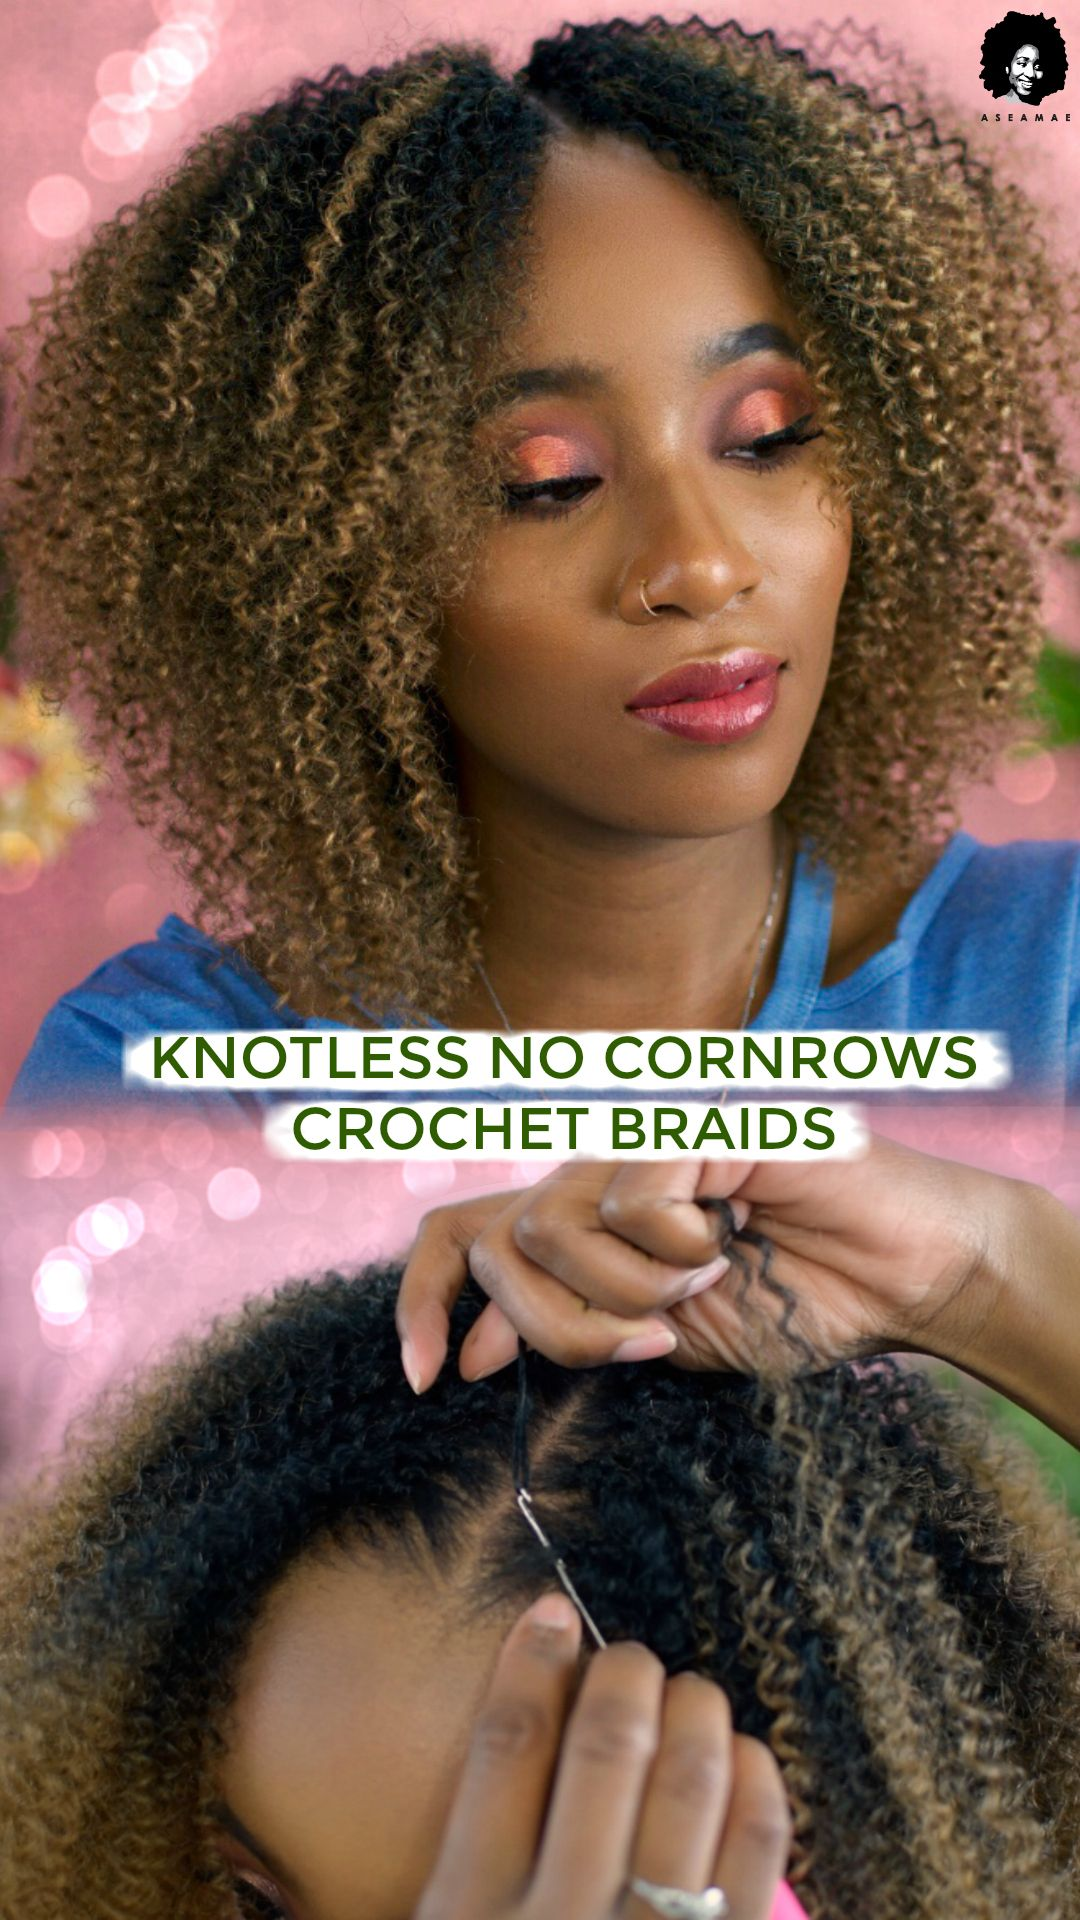 pin on crochet braids and protective styles for women of color